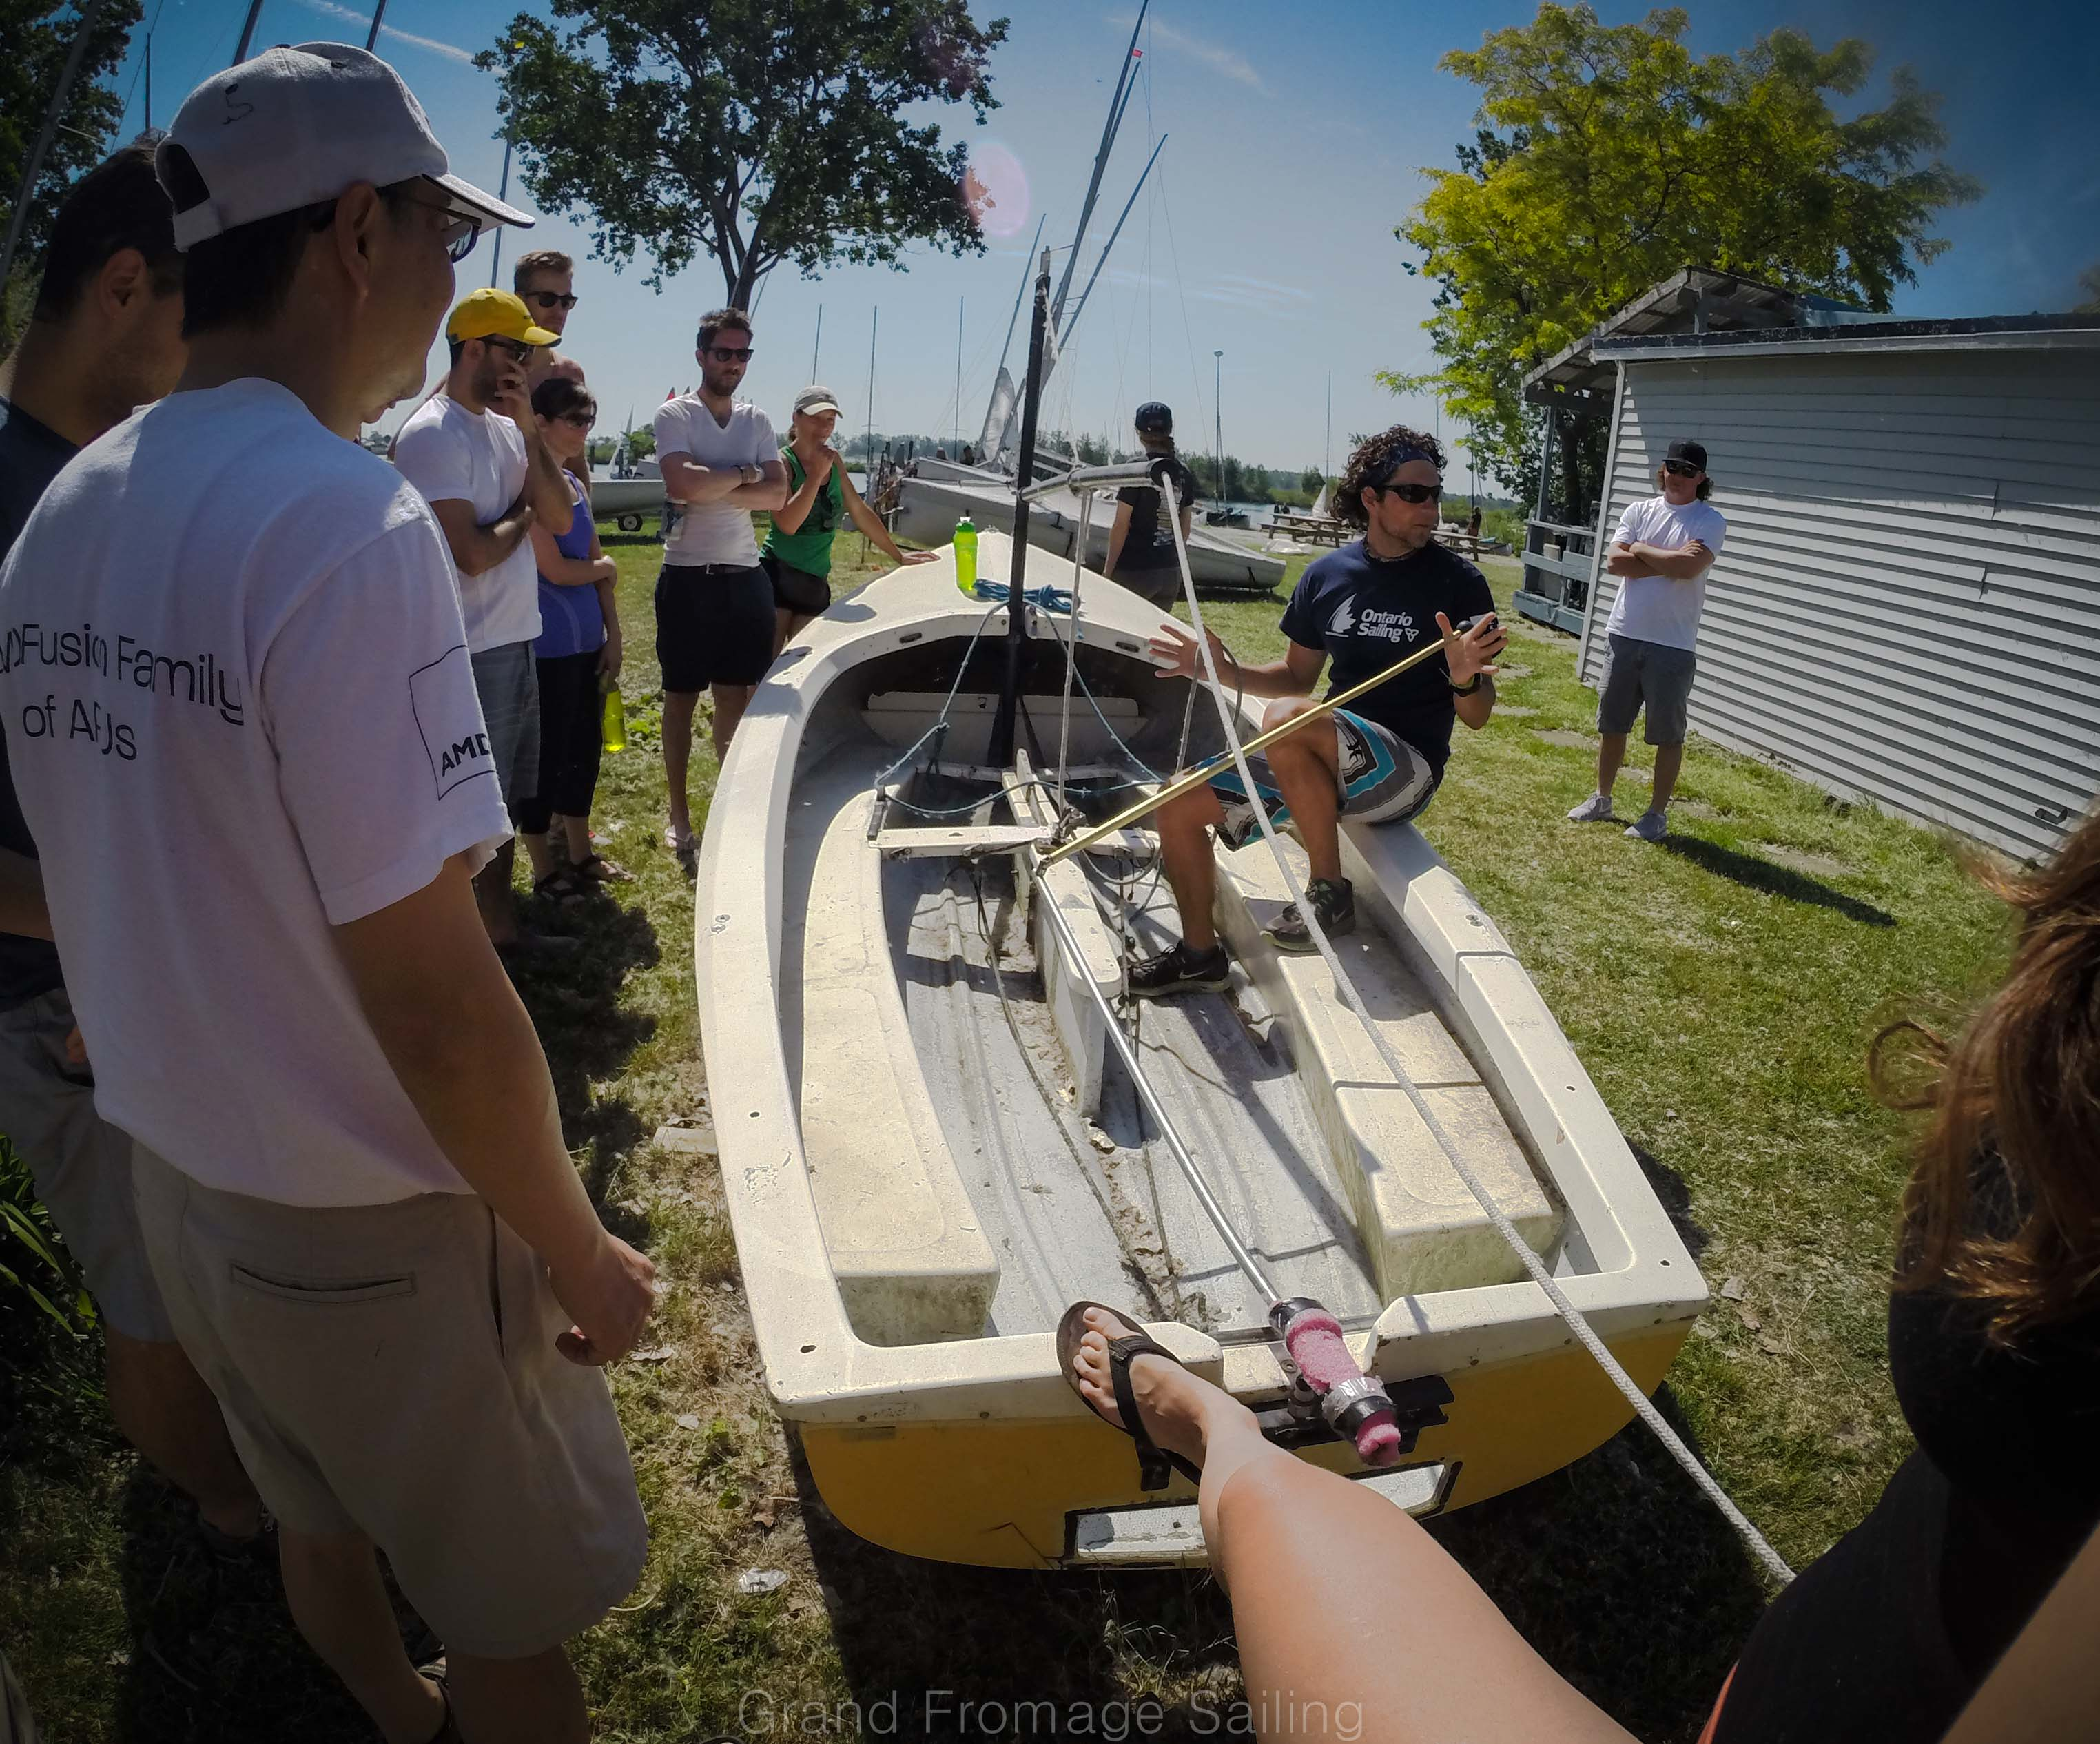 Alex Byczko demonstrating the tiller main sheet exchange on a land boat with athletes watching